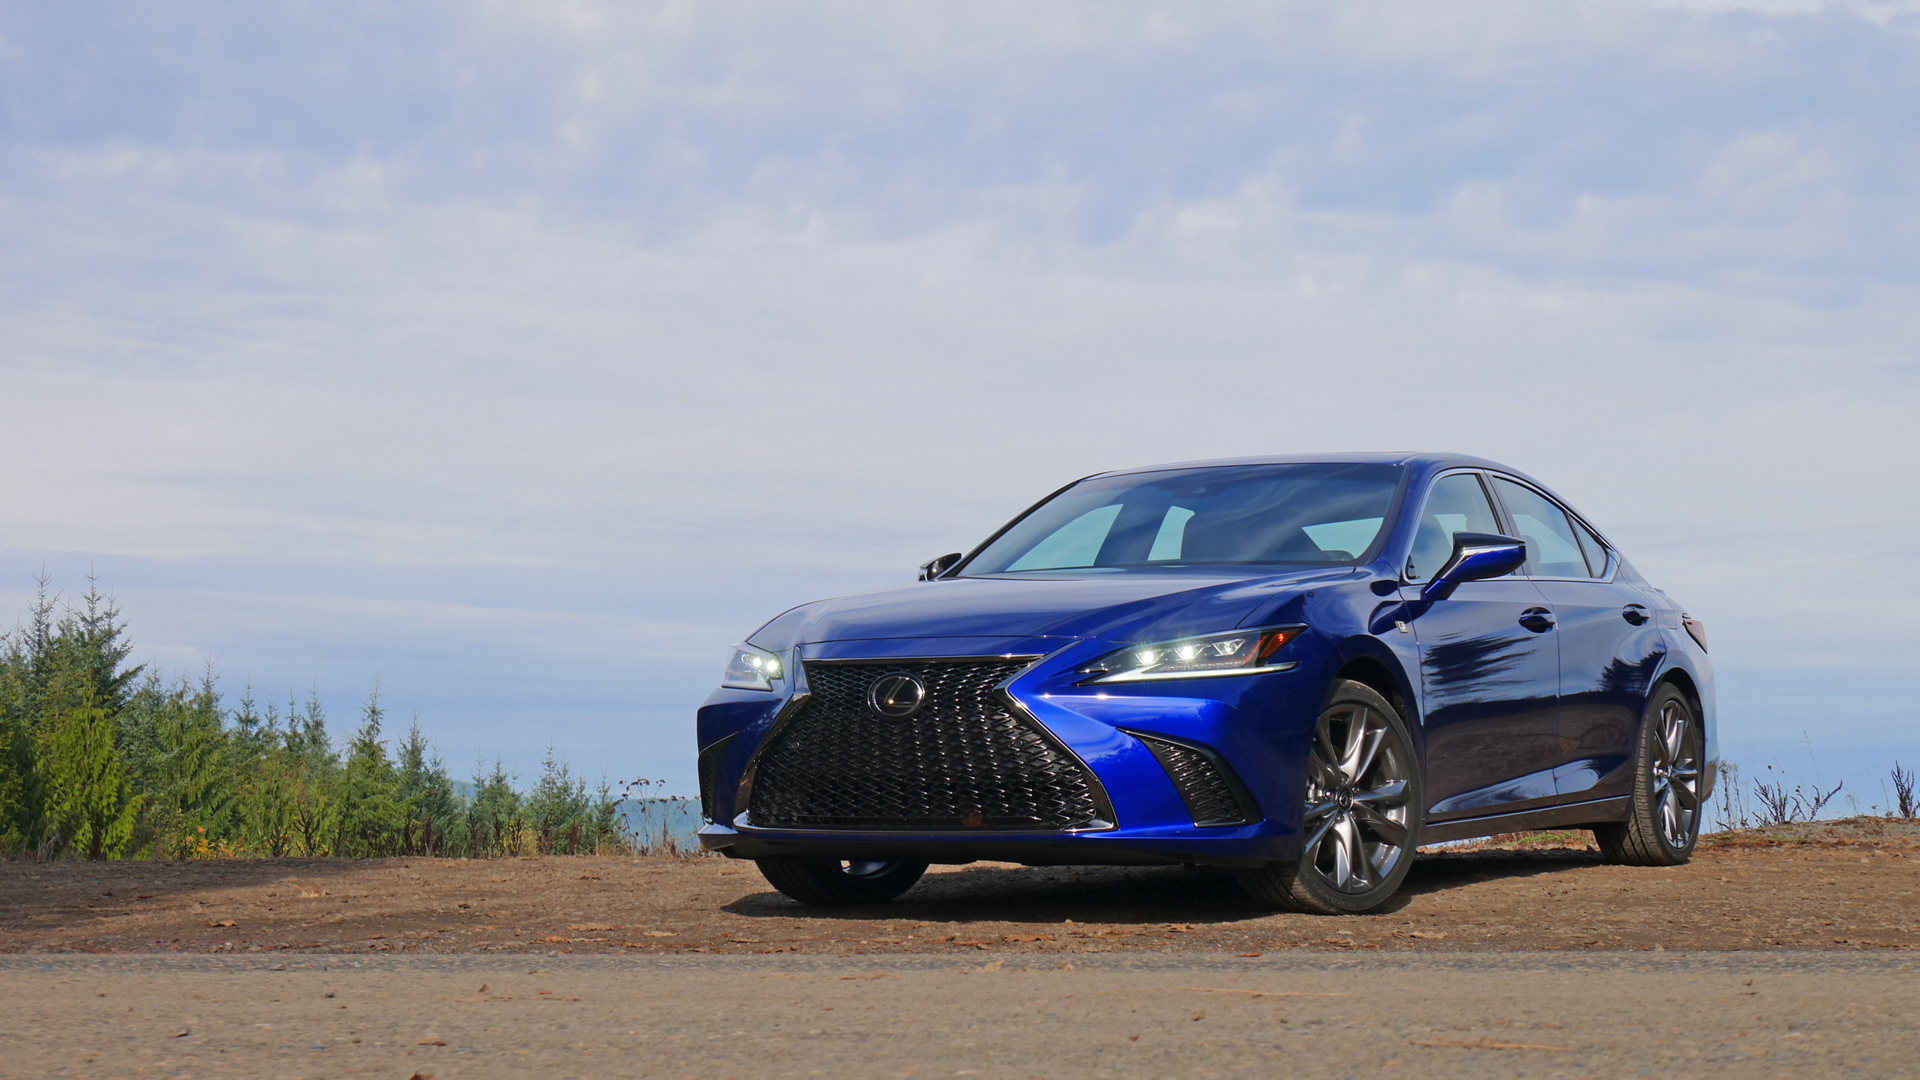 2019 Lexus ES 350 F Sport review and driving impressions